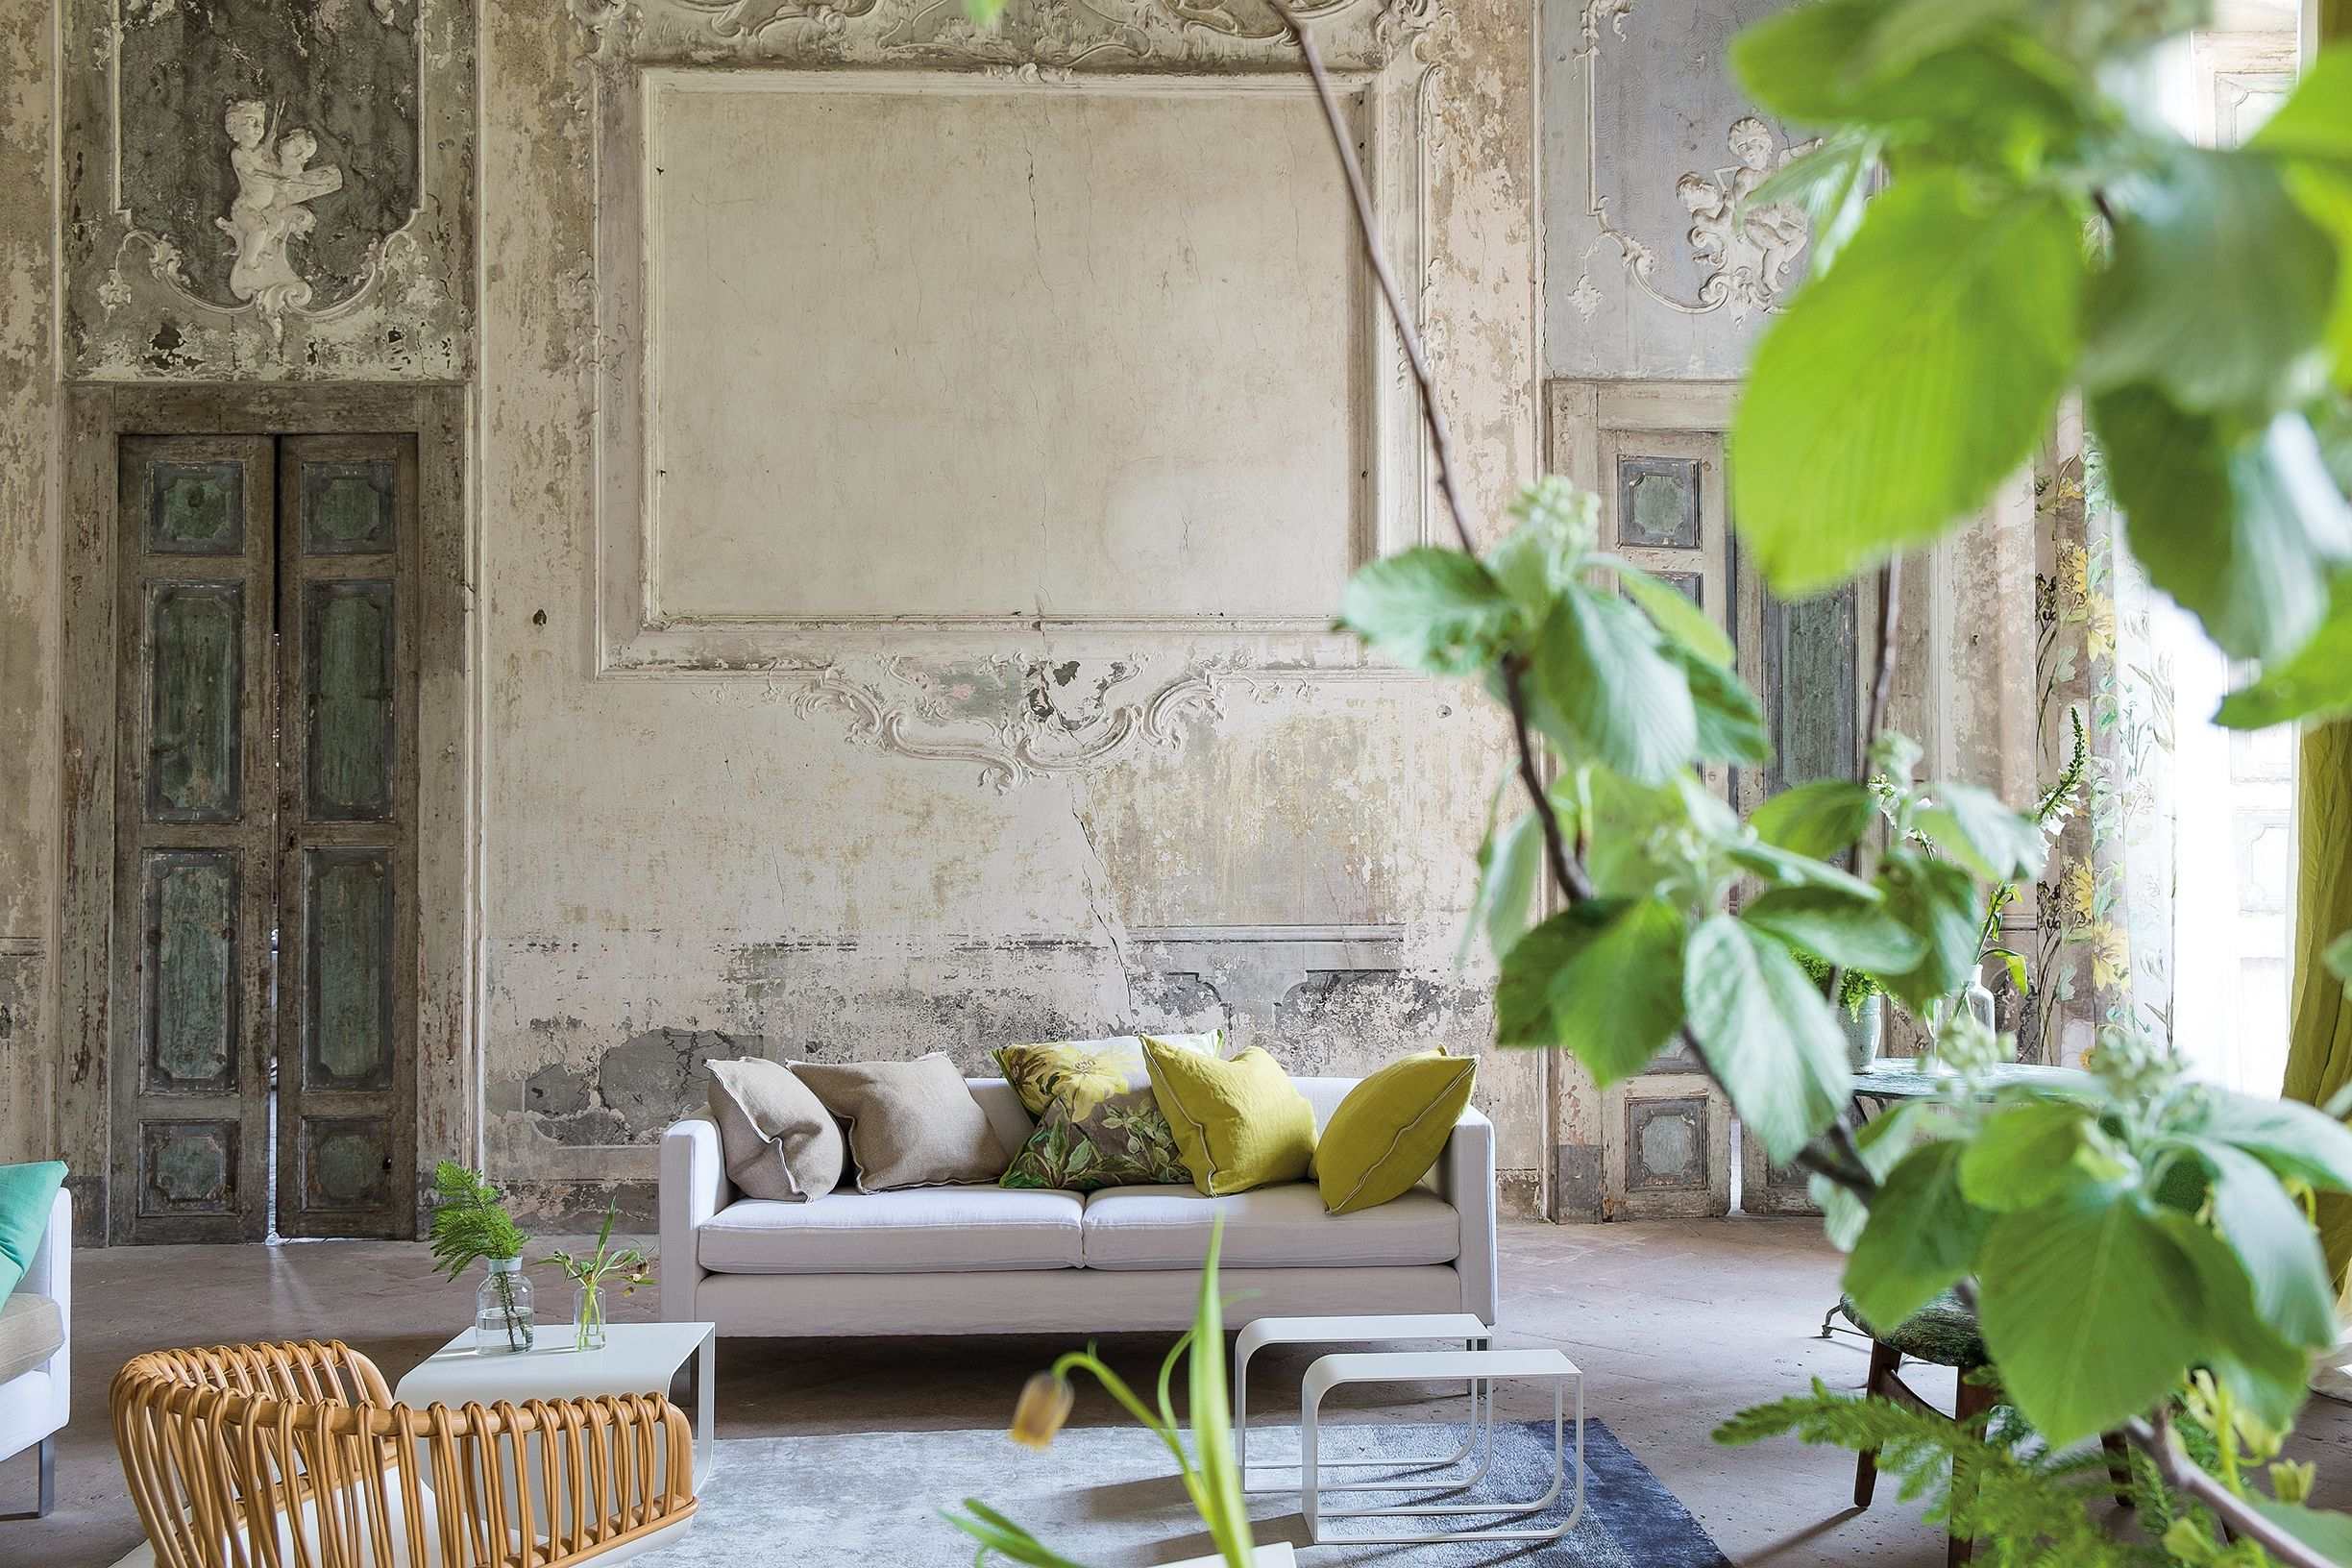 Designers Guild Quadro Sofa. What A Room. Very Old World